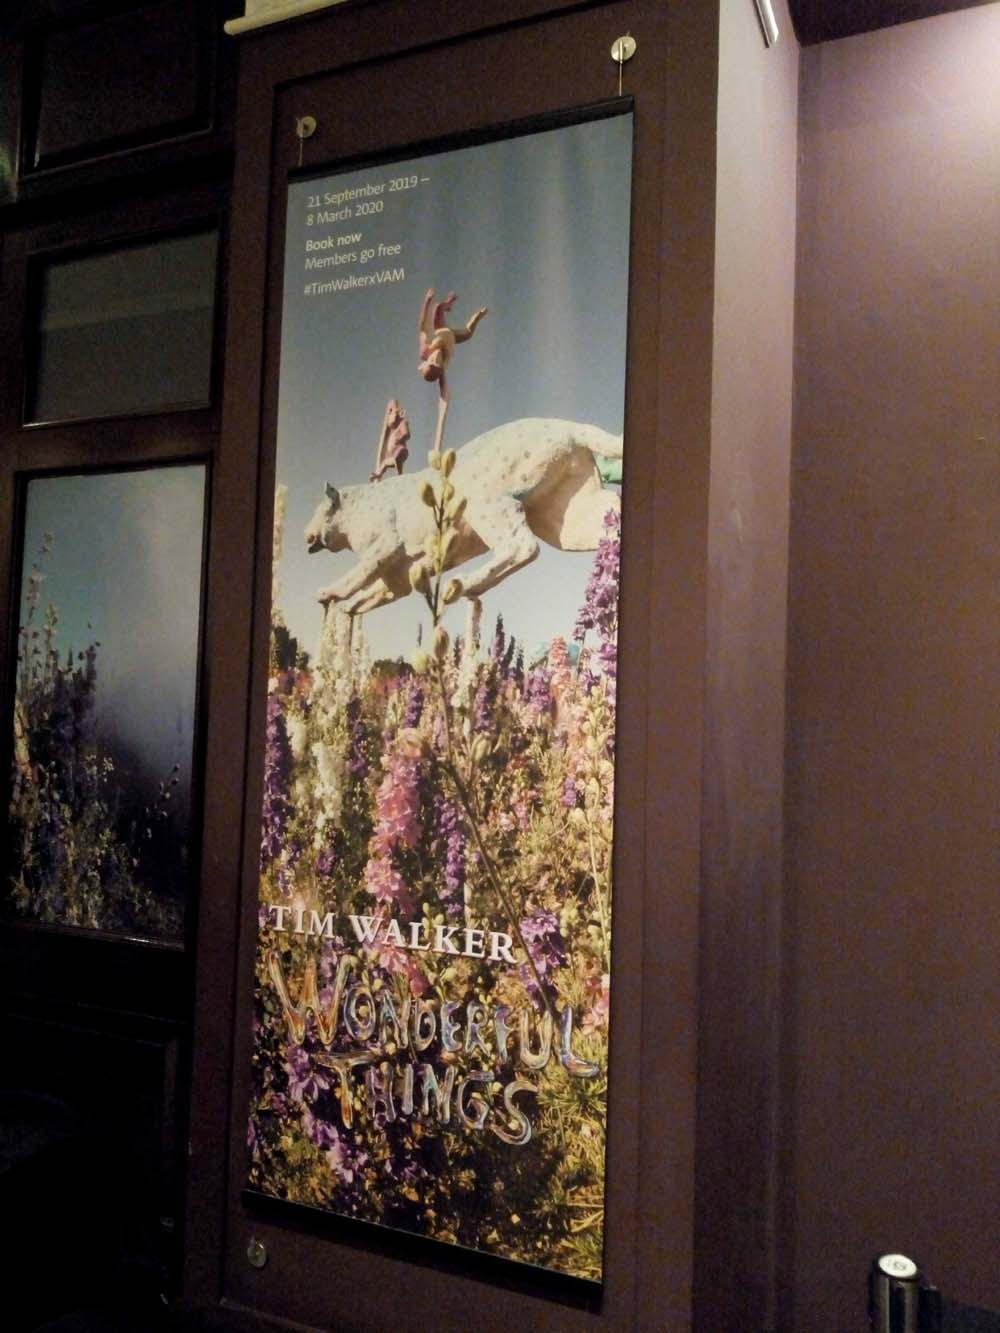 Advertising poster for the Tim Walker Wonderful Things featuring The Confetti Flower Field